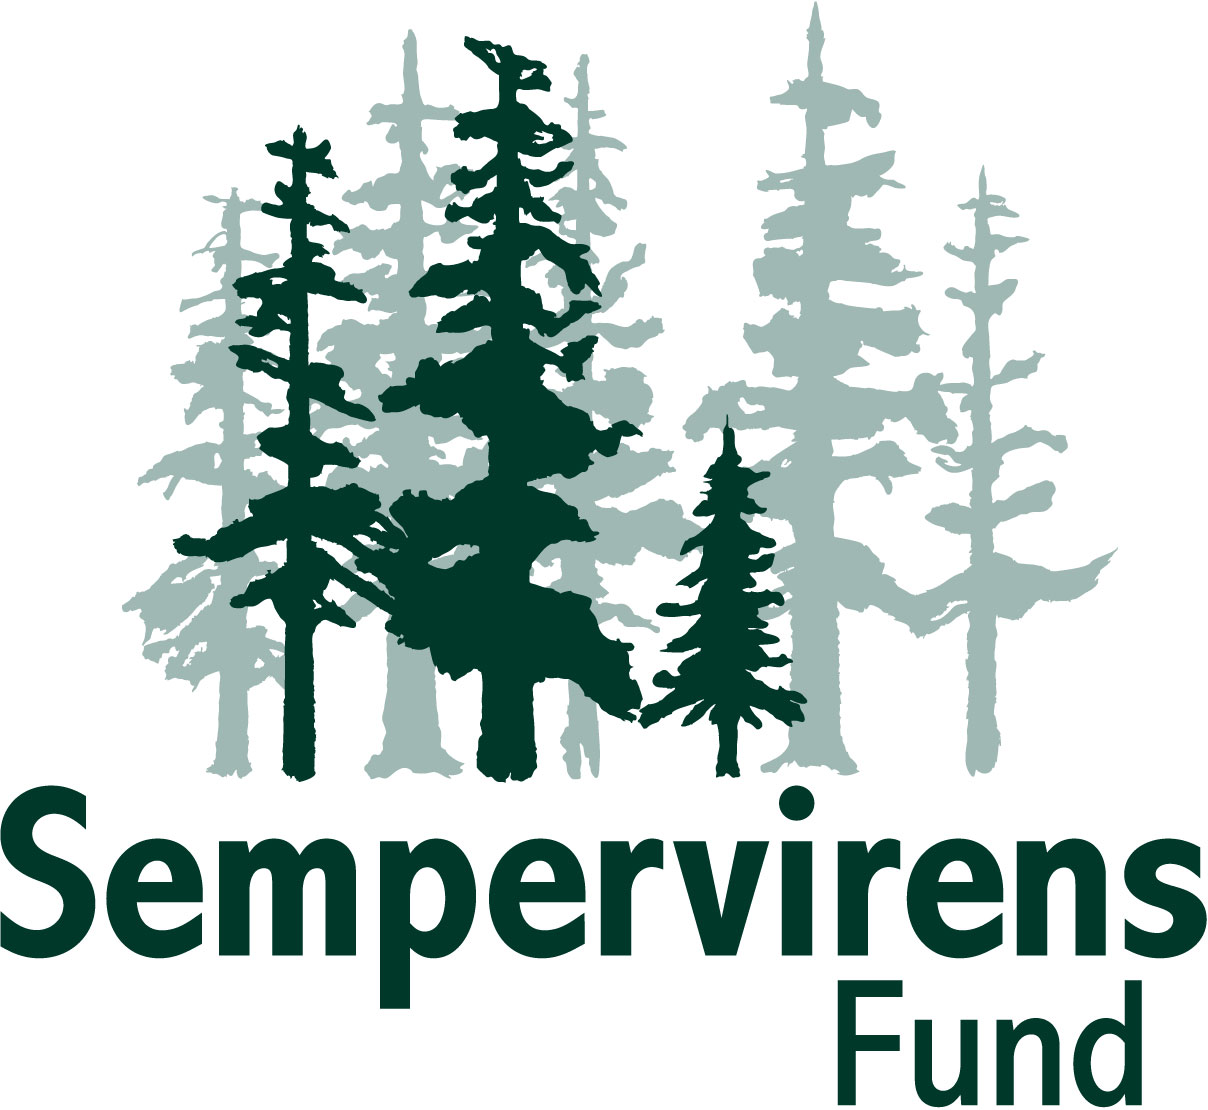 sempervirens fund logo